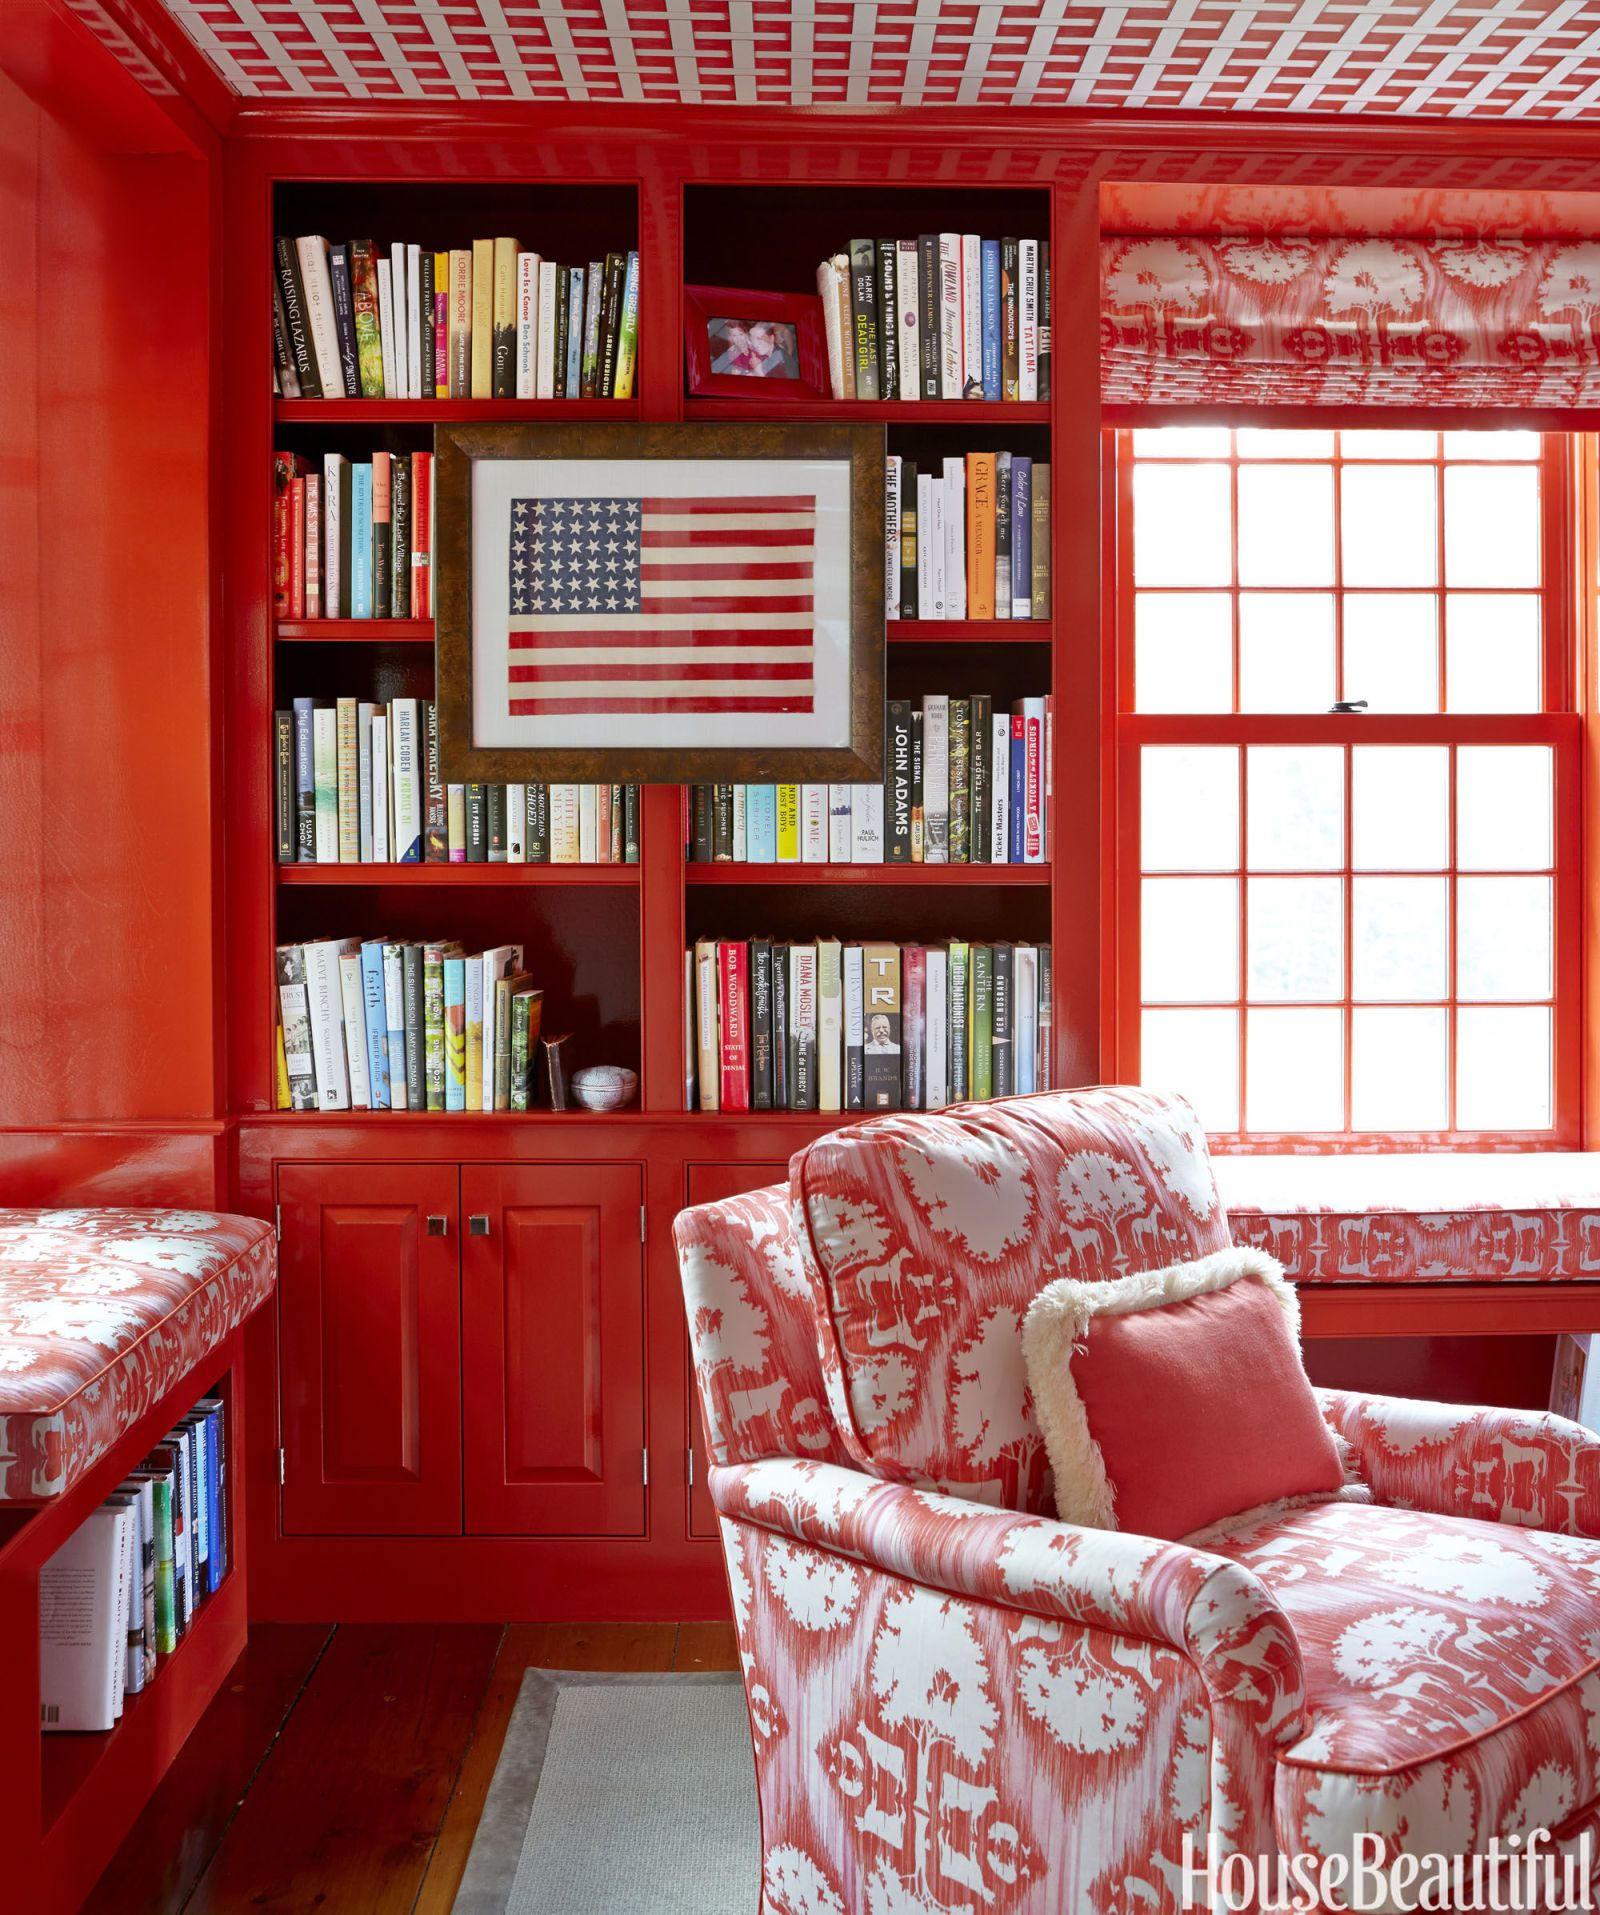 Using one fabric in the library — Farmyard Strie by Ramsay Gourd Home — on the chairs, sofa, window seats, and shades makes for a cozy, cohesive room. The cambridge chair, topped with a trimmed, red pillow, is by the Charles Stewart Company.    - HouseBeautiful.com